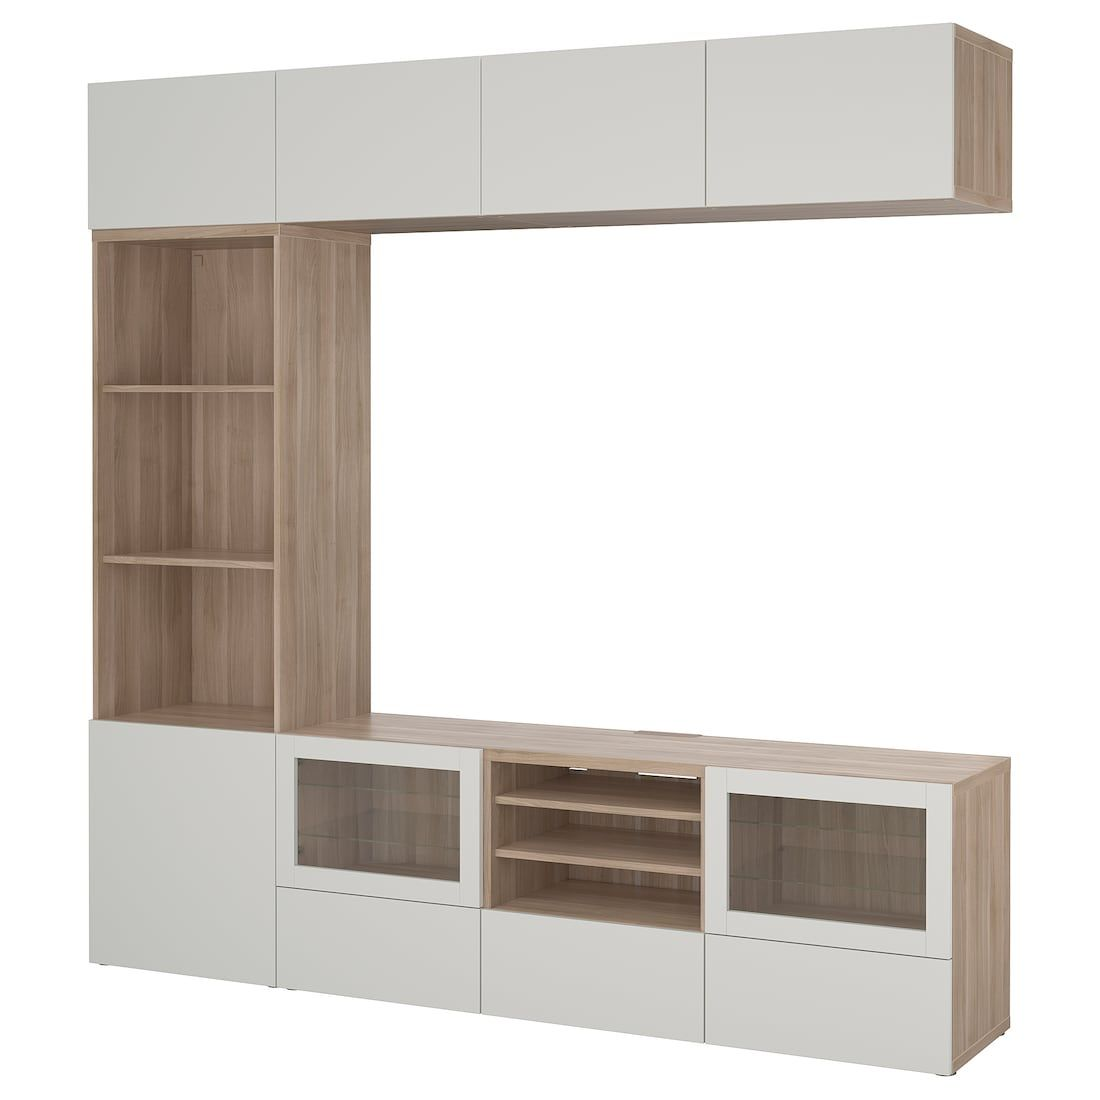 Ikea BestÅ Tv Storage Combination Glass Doors Walnut - Ikea Meuble Tiroir